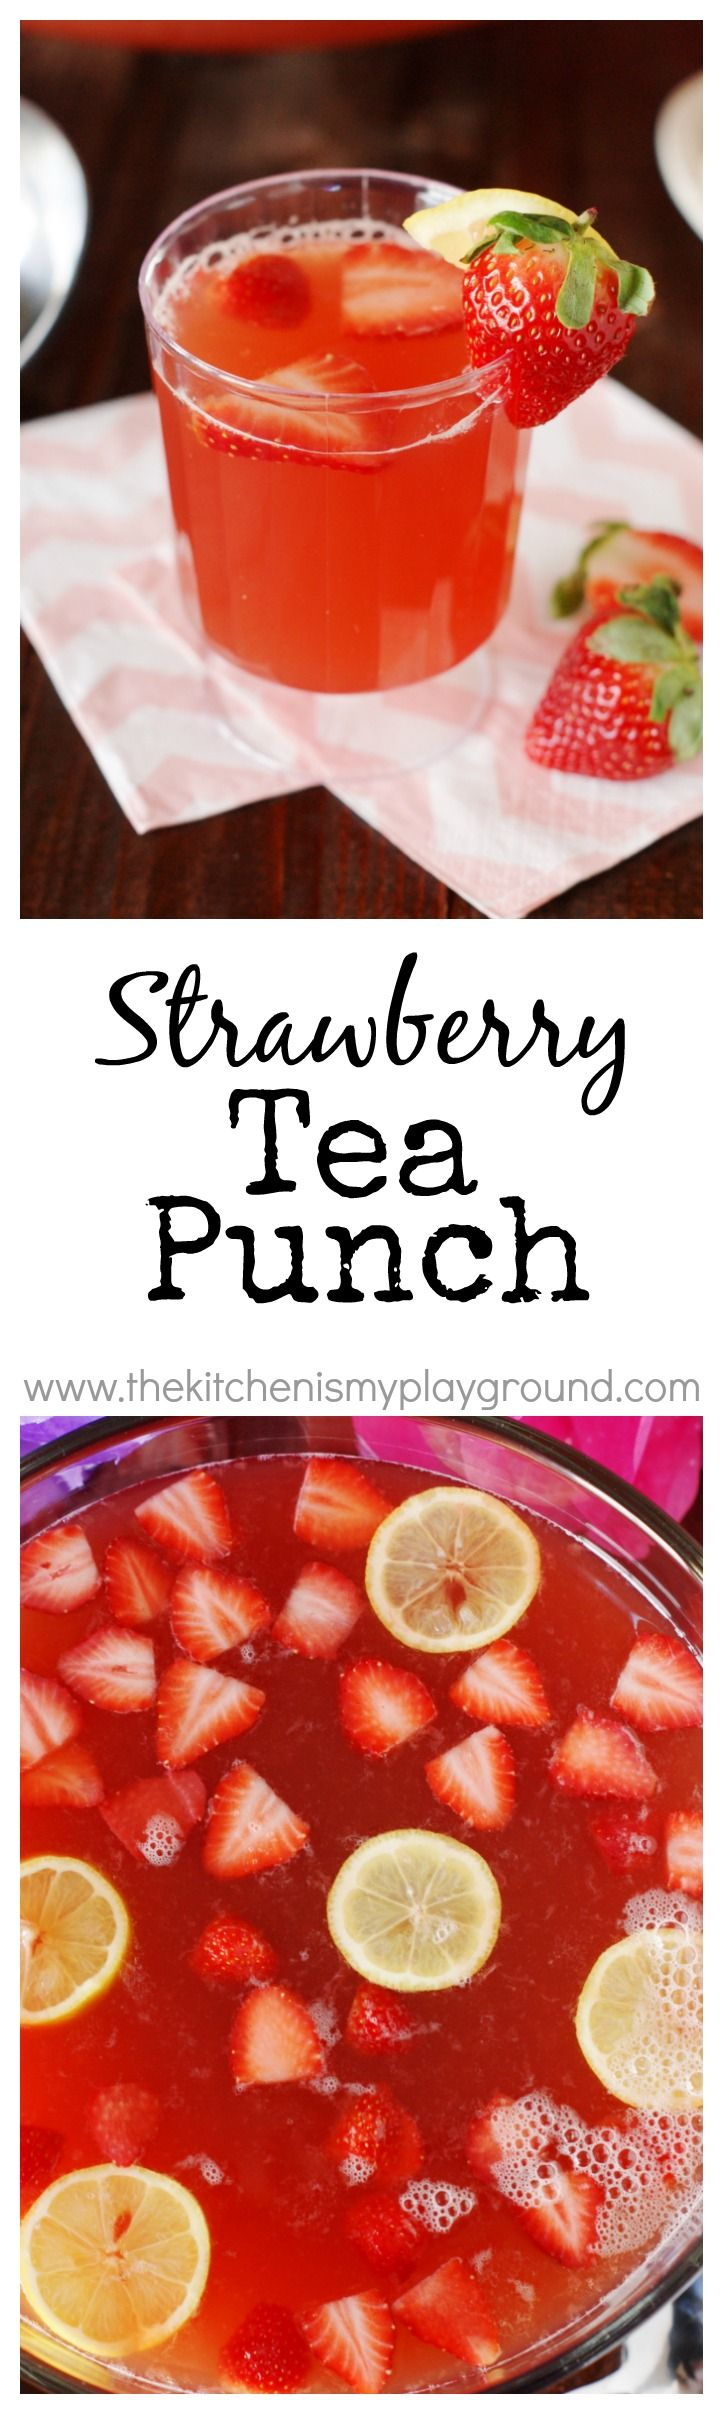 Strawberry Tea Punch ~ A amazingly delicious, crowd-pleasing punch! Perfect for a tea party, bridal shower, or brunch. #LiptonTeaTime sponsored www.thekitchenismyplayground.com